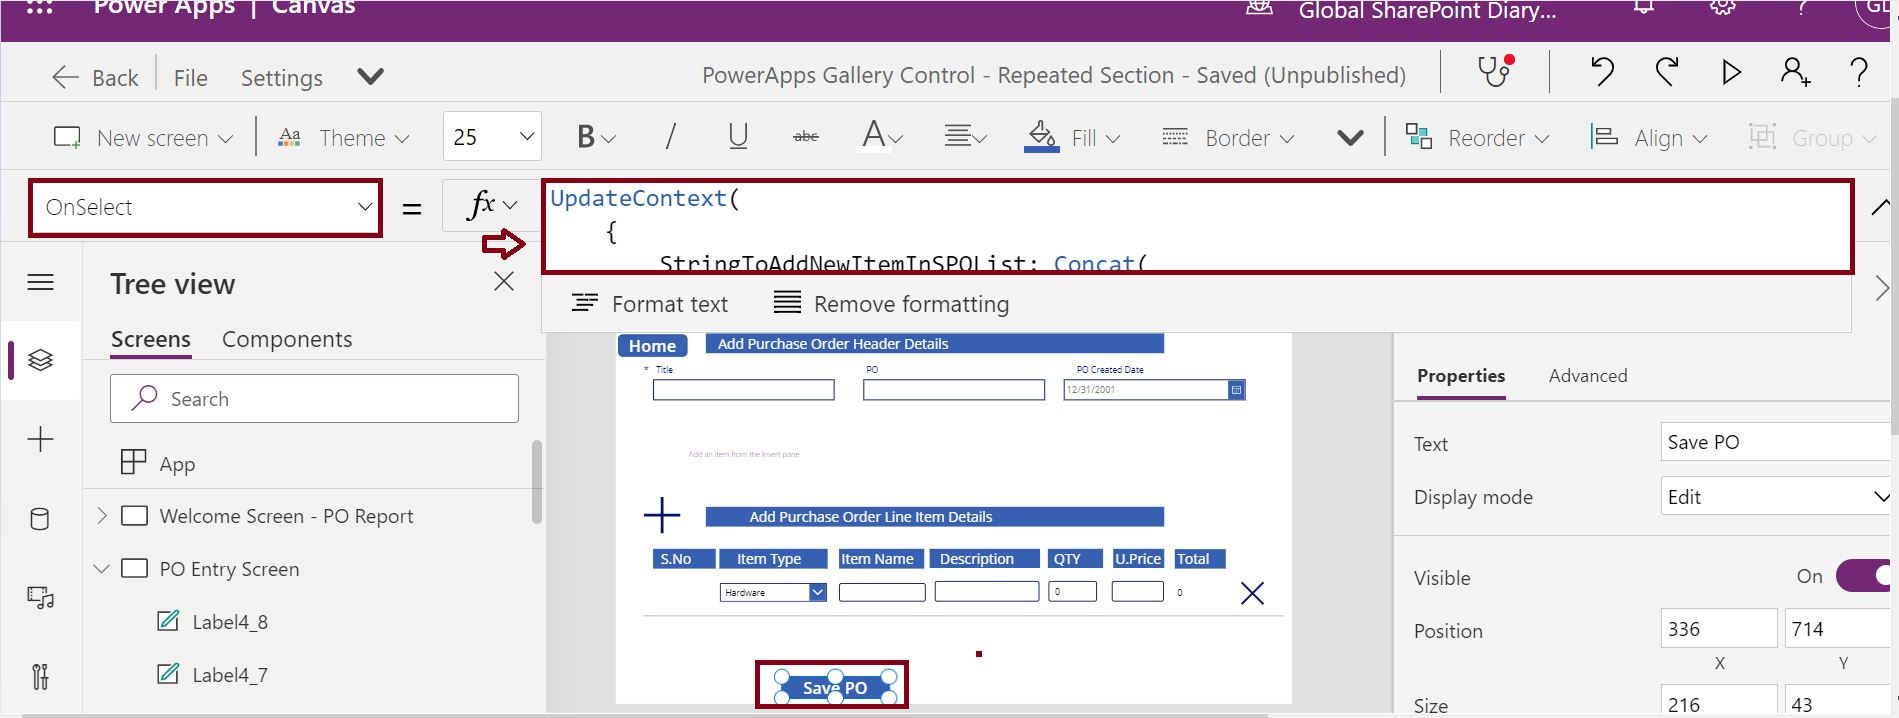 Save Purchase Order header and line items to SharePoint from PowerApps